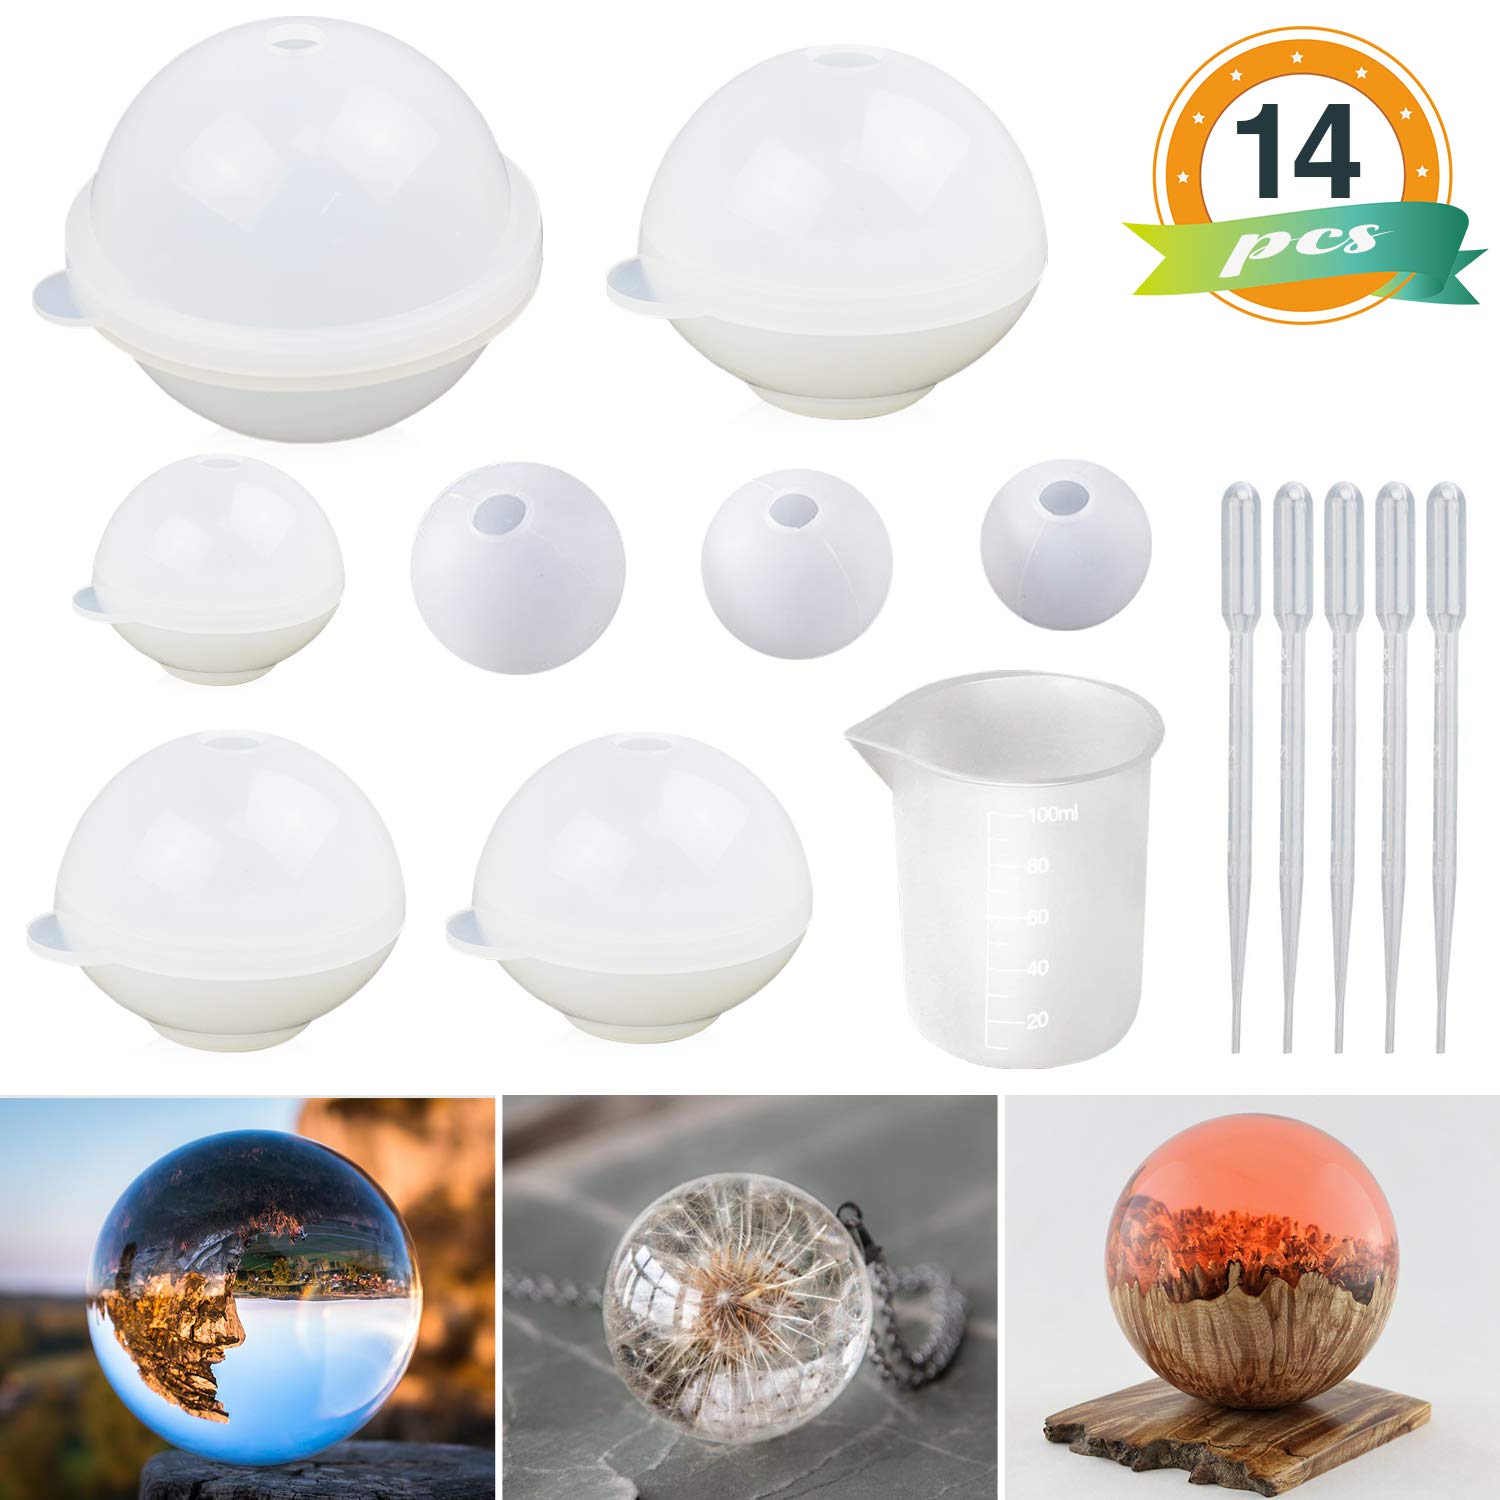 Sphere Silicone Resin Molds LET'S RESIN Round Silicone Mold, Epoxy Resin Ball Molds for Resin Jewelry, Soap Candle DIY, with Nonstick Silicone Mixing Cup by LET'S RESIN